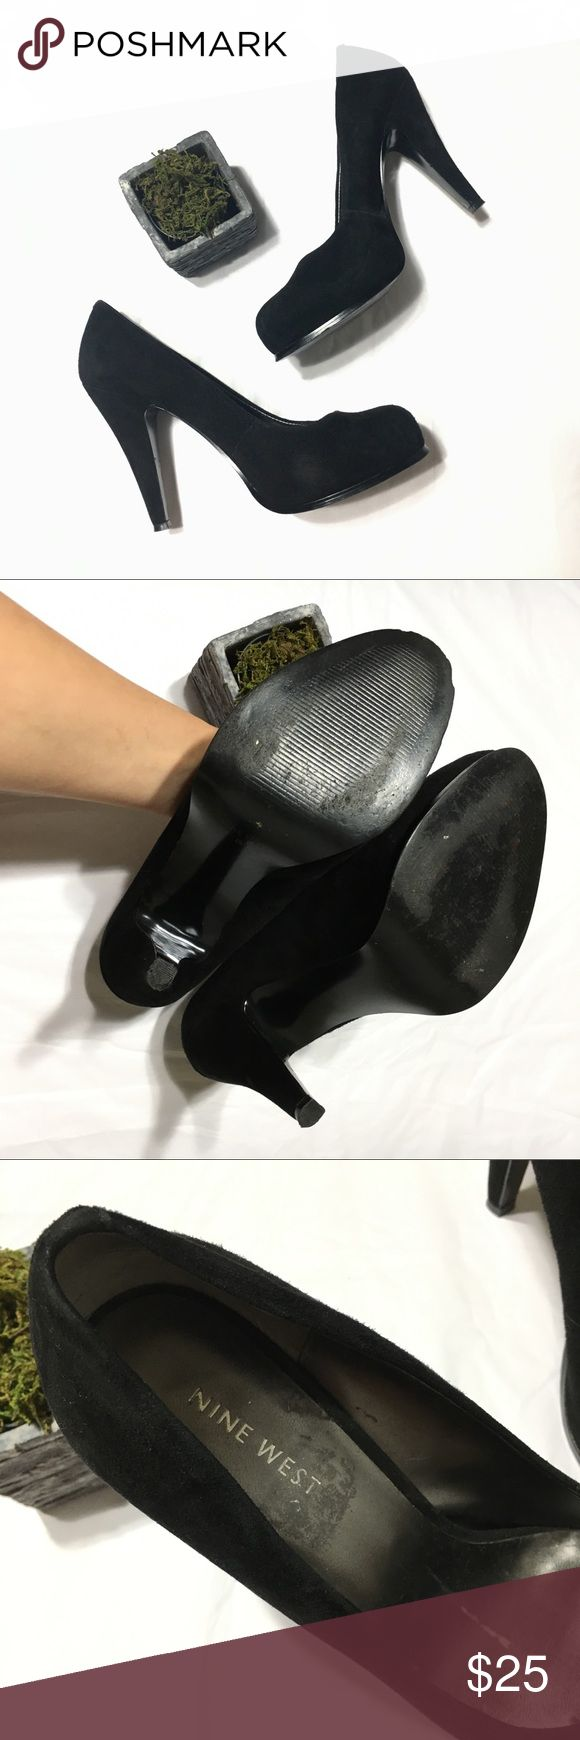 Nine West Heels Faux suede size 8 Nine West heels, small residue from tags on inner part of heel. Fair offers are welcome! Nine West Shoes Heels